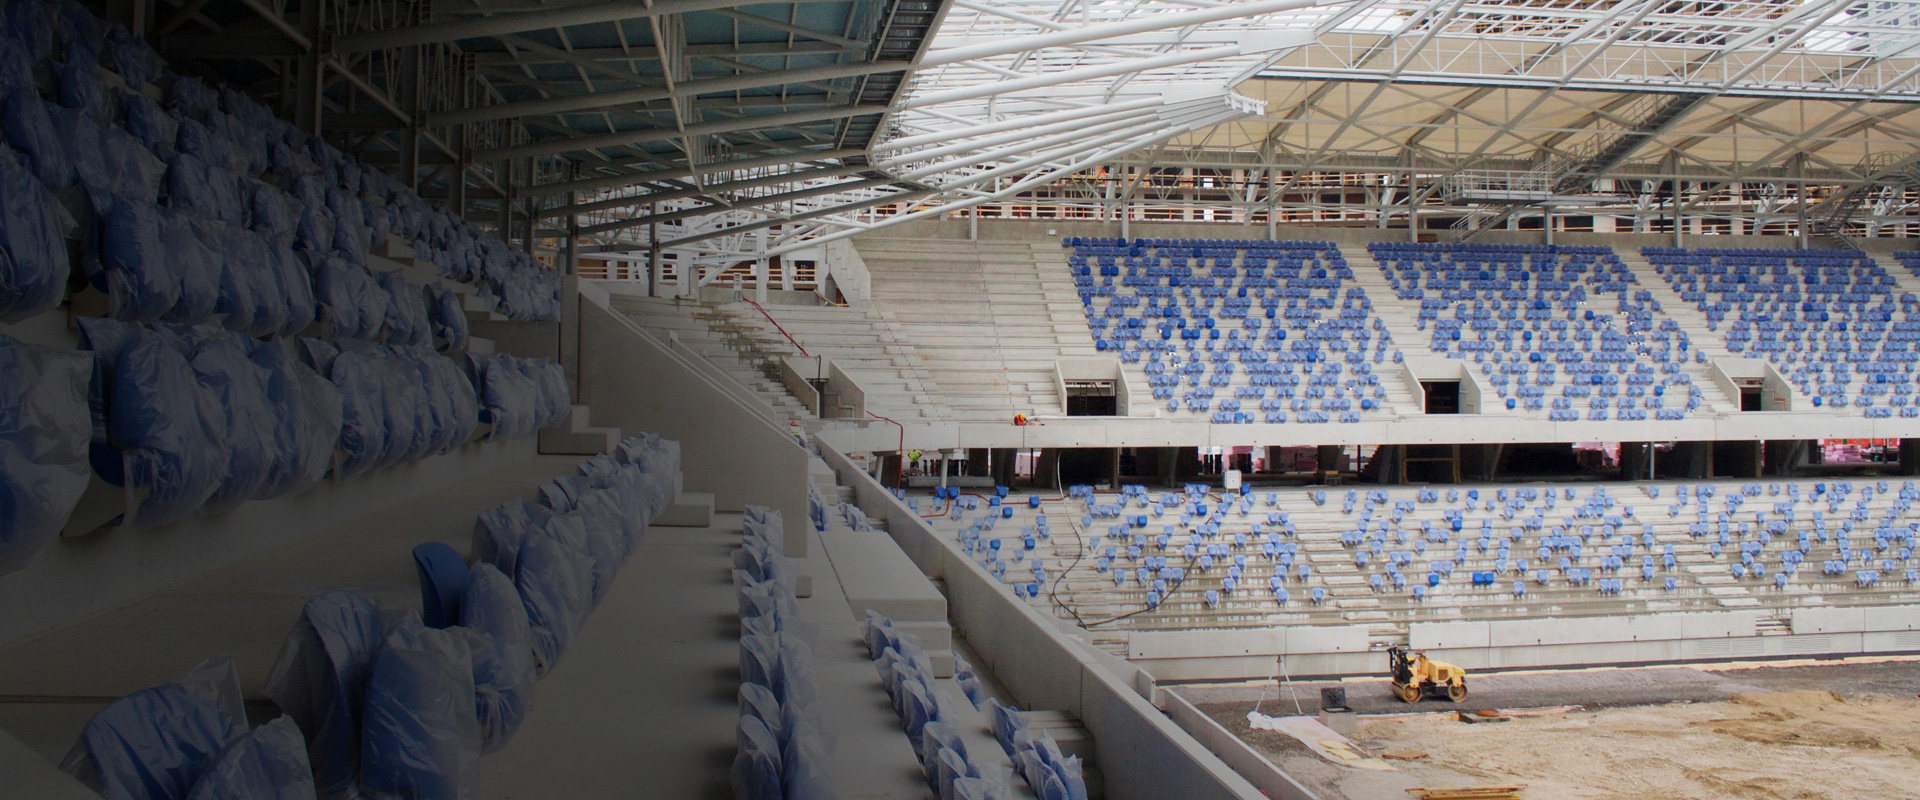 The new national arena in Bratislava is set to be awarded the highest UEFA stadium category.